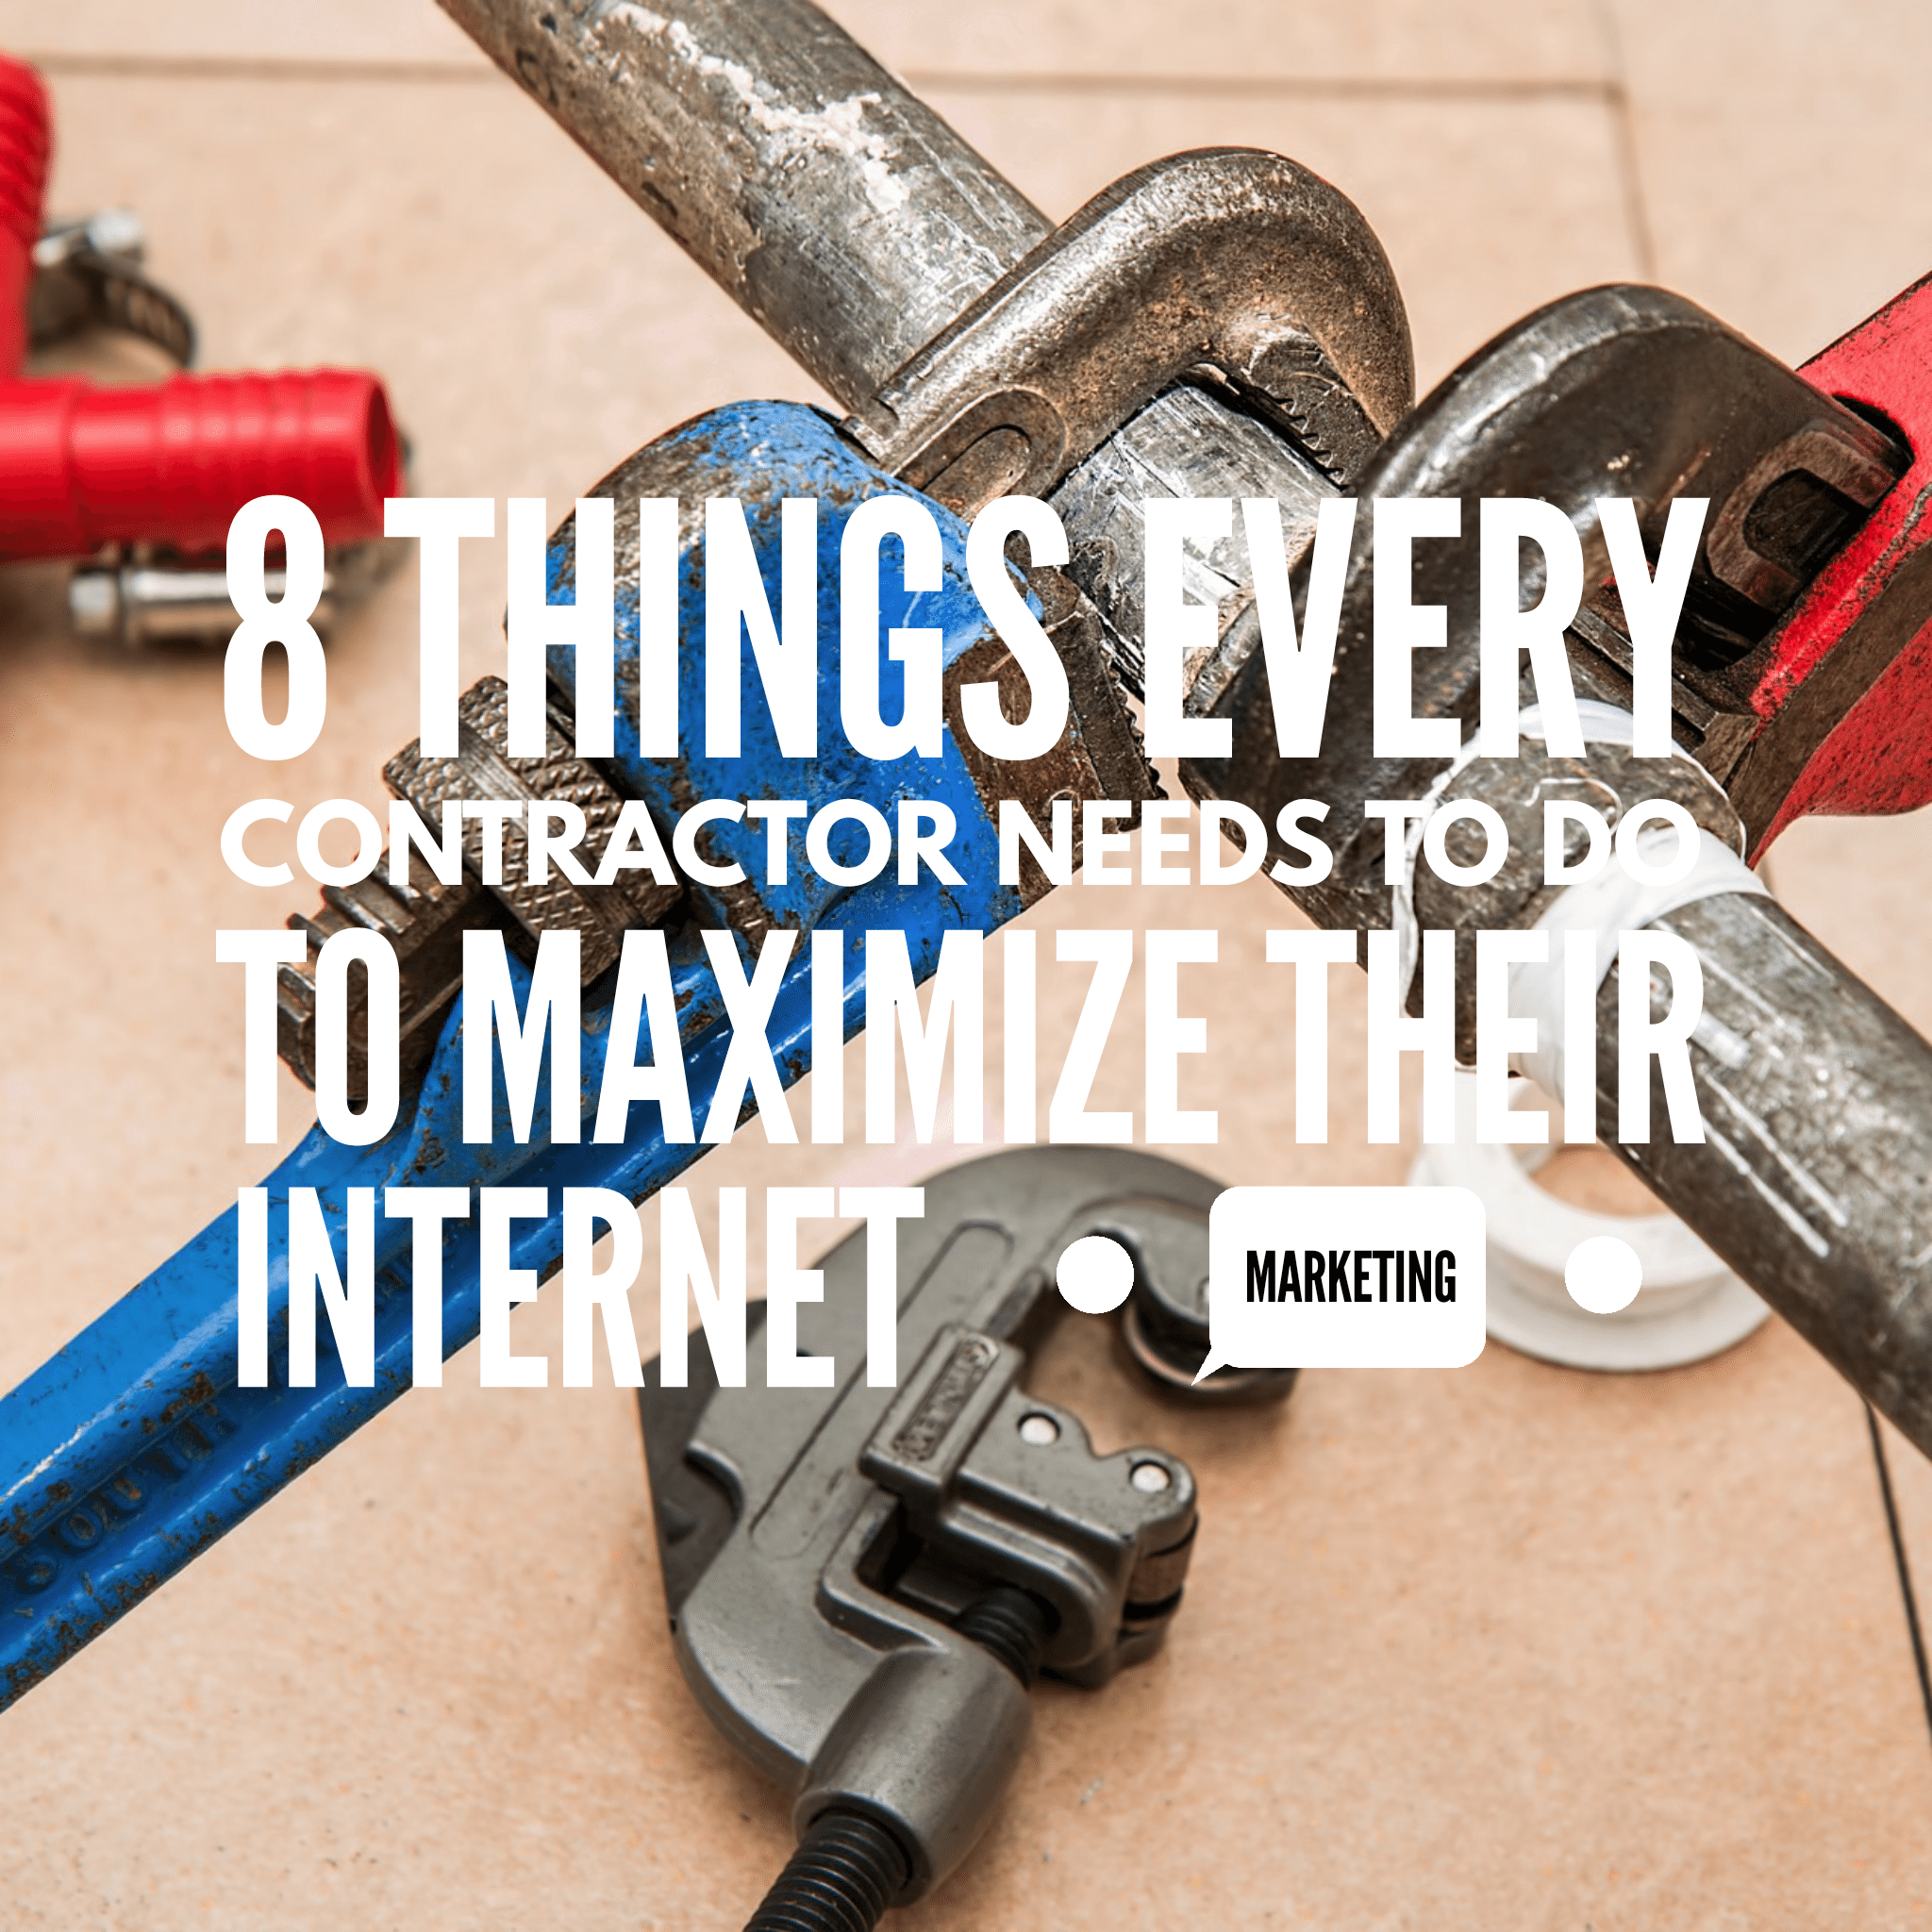 8 Things Every Contractor Needs to Do to Maximize Their Internet Marketing